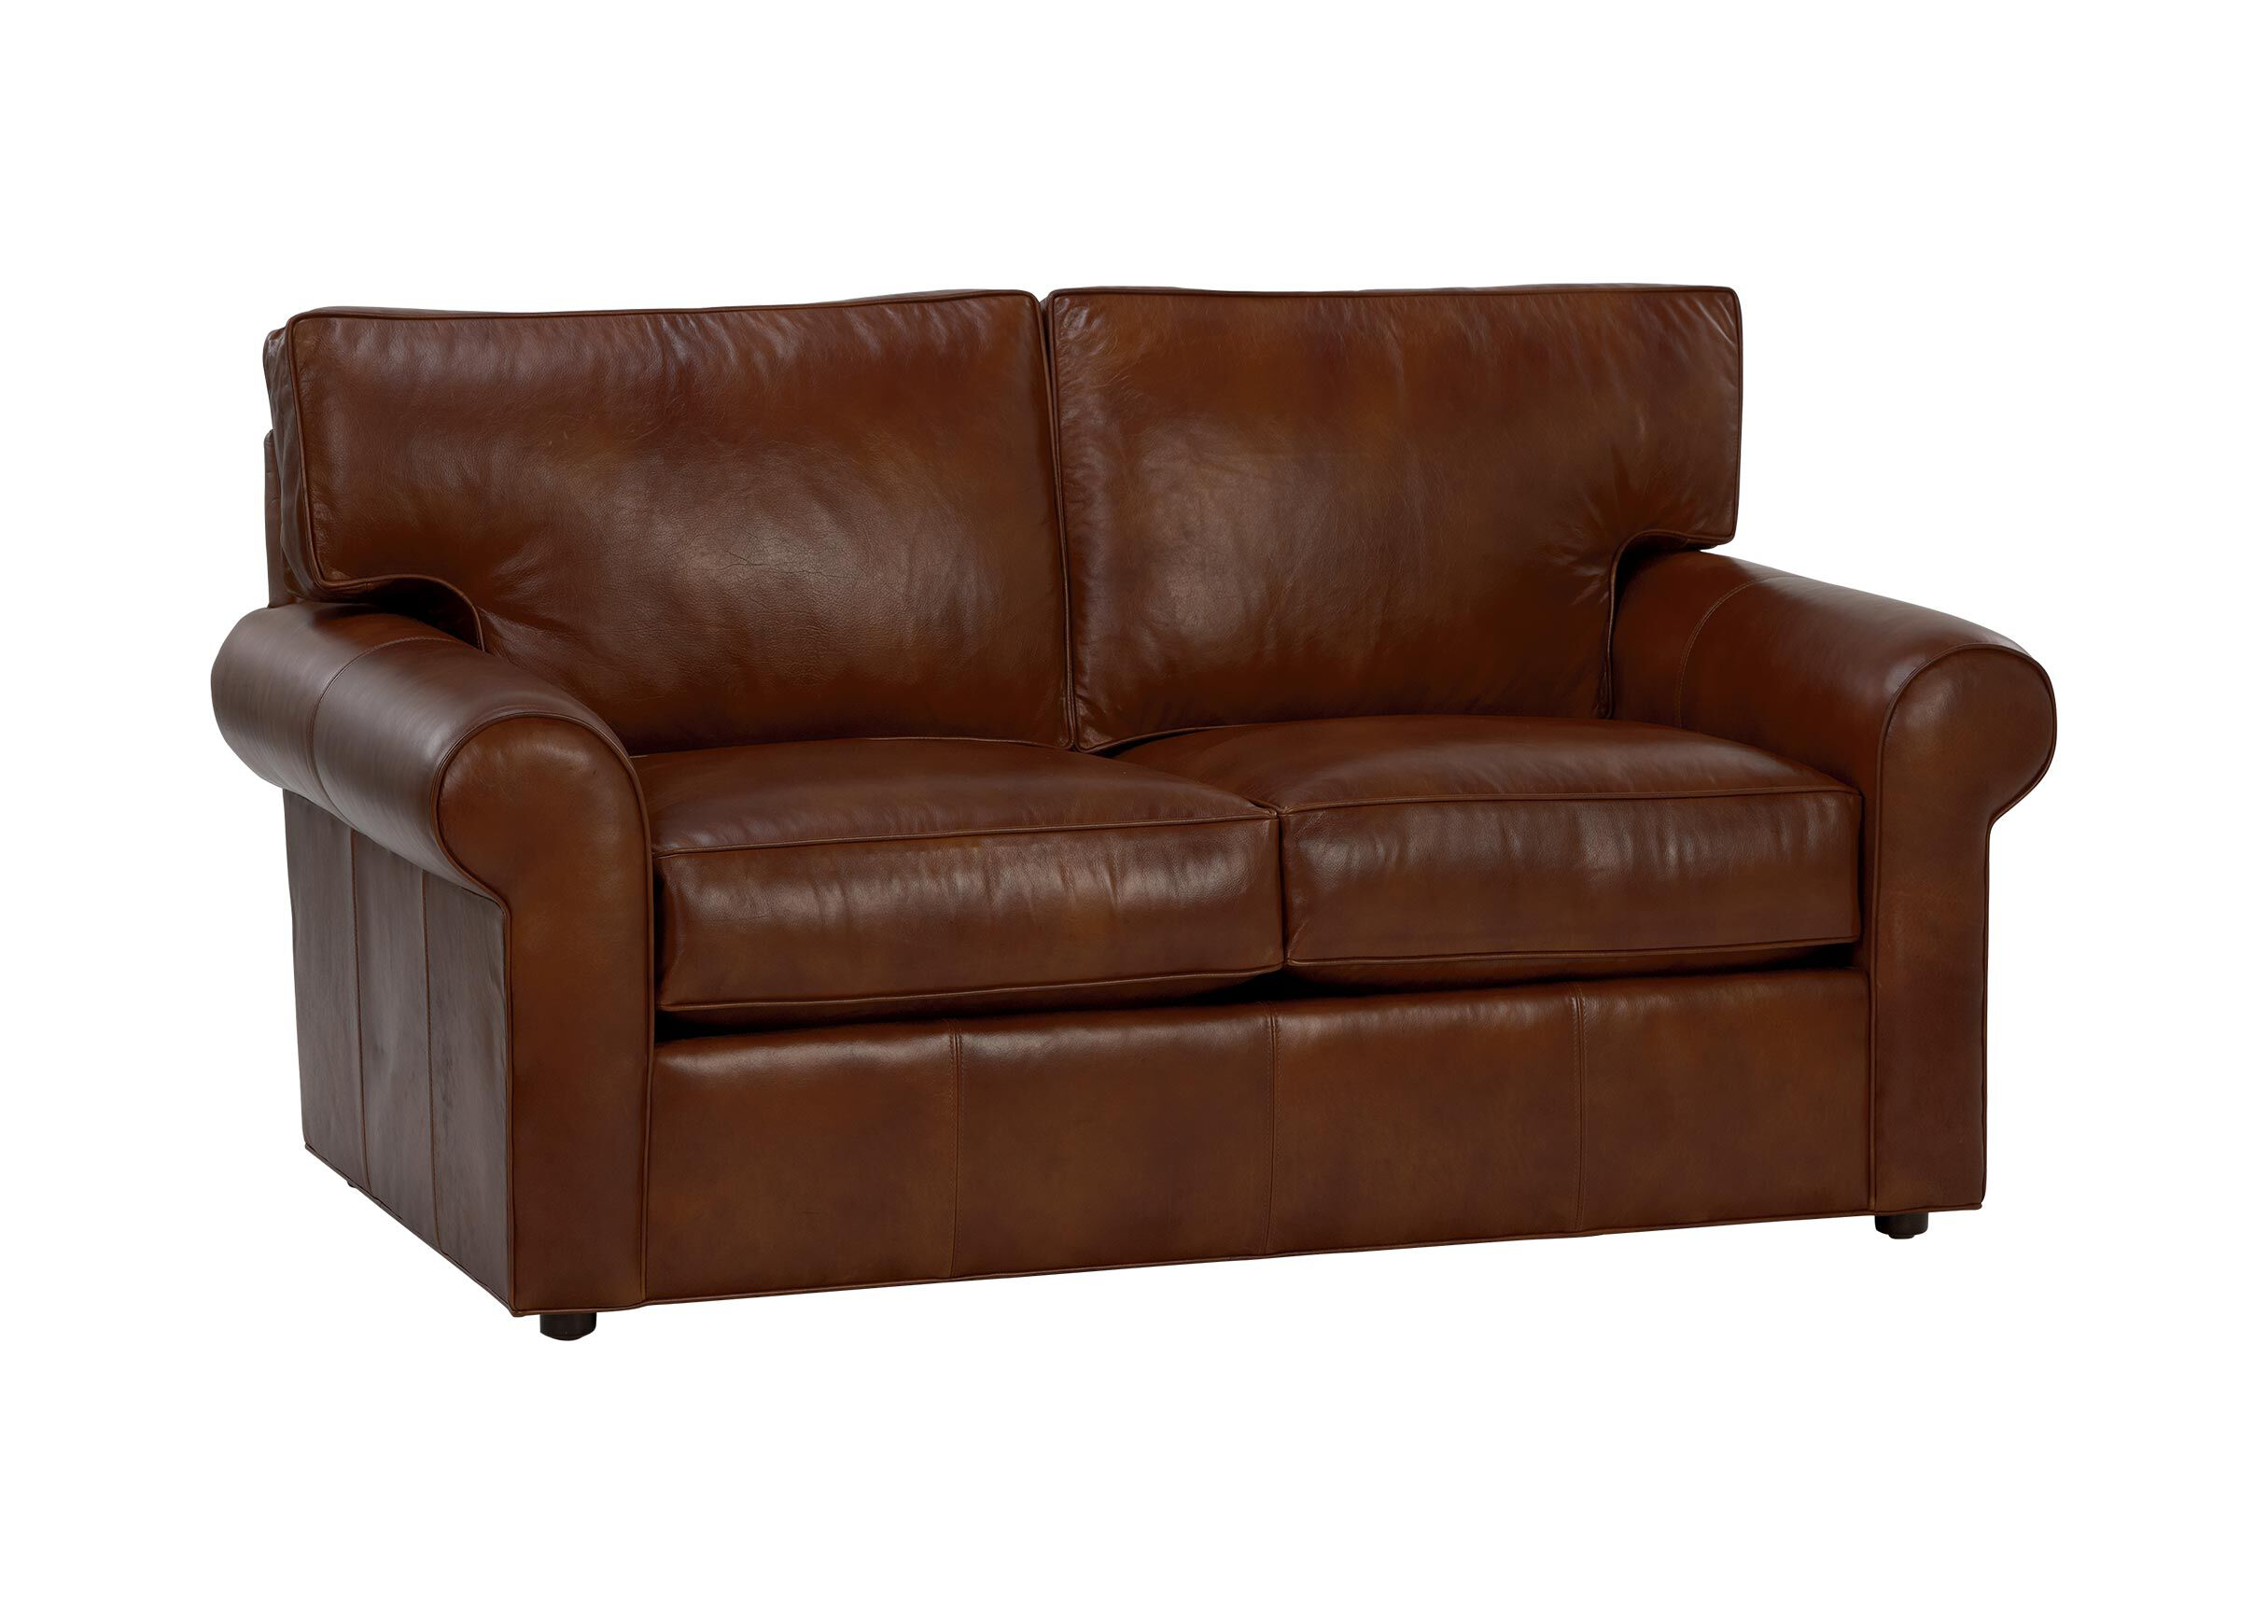 roll arm sofa canada lightweight bed retreat leather sofas and loveseats